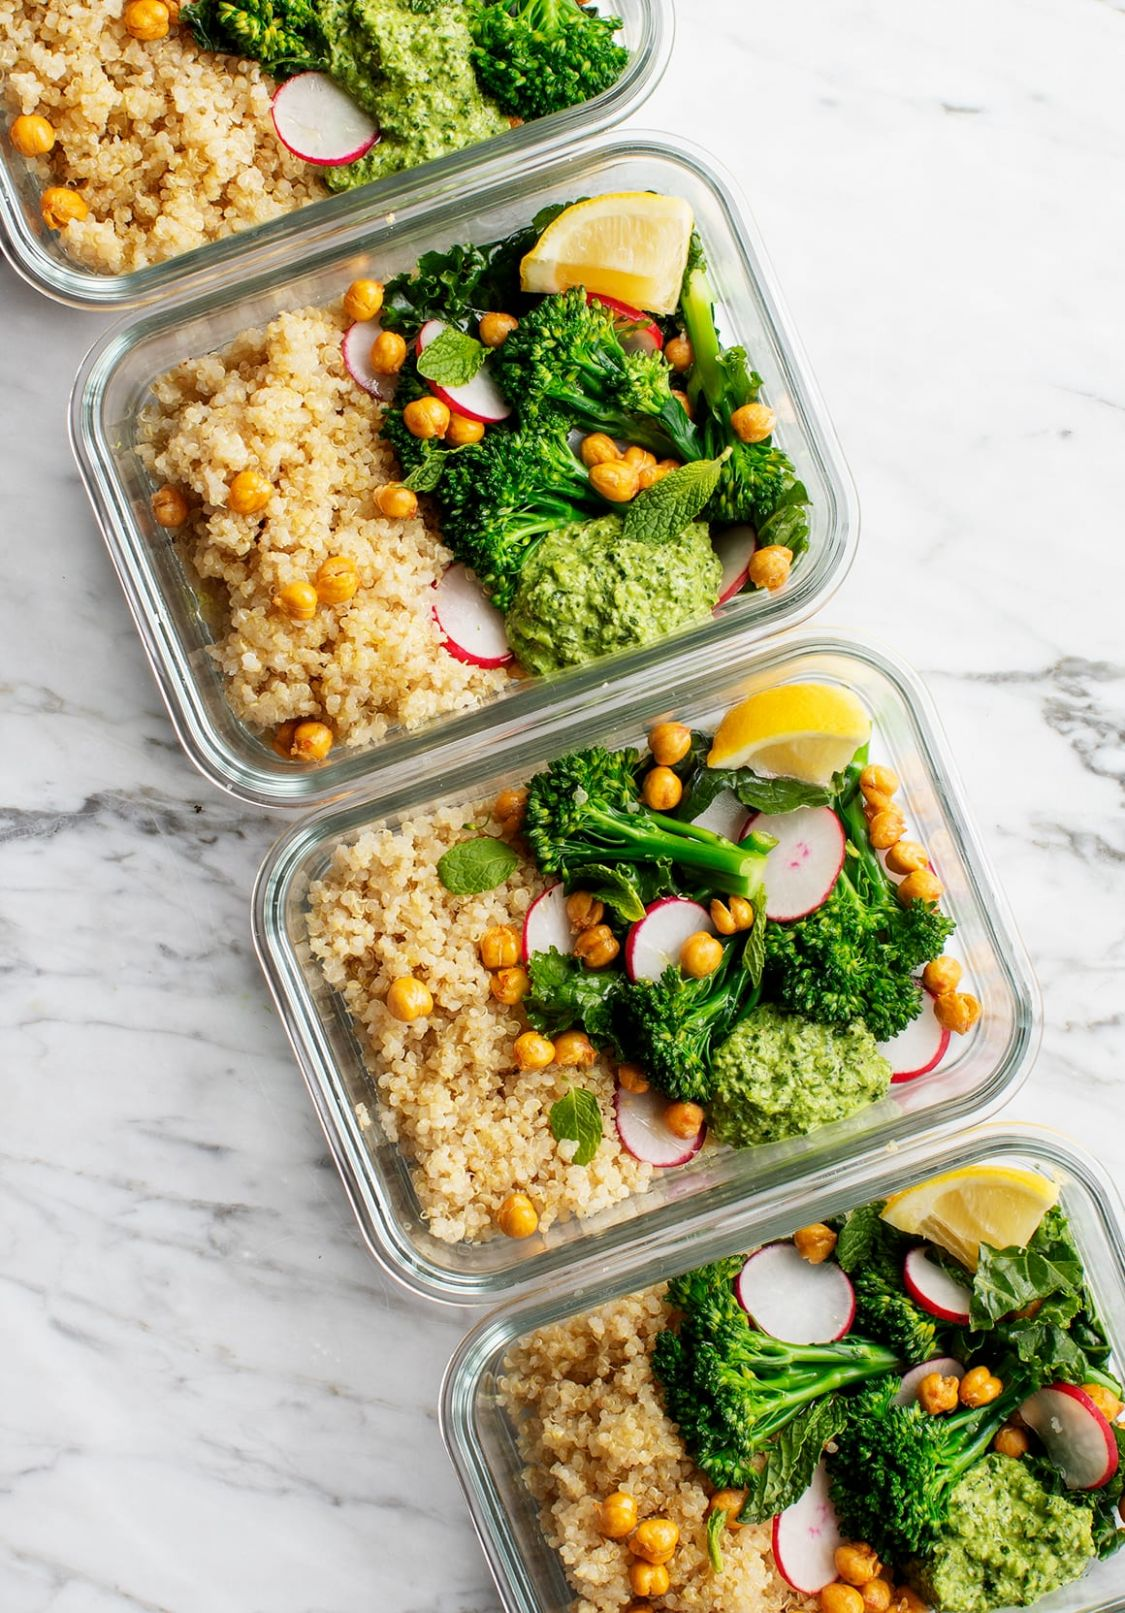 Healthy Meal Prep Ideas - Broccoli Quinoa Bowls